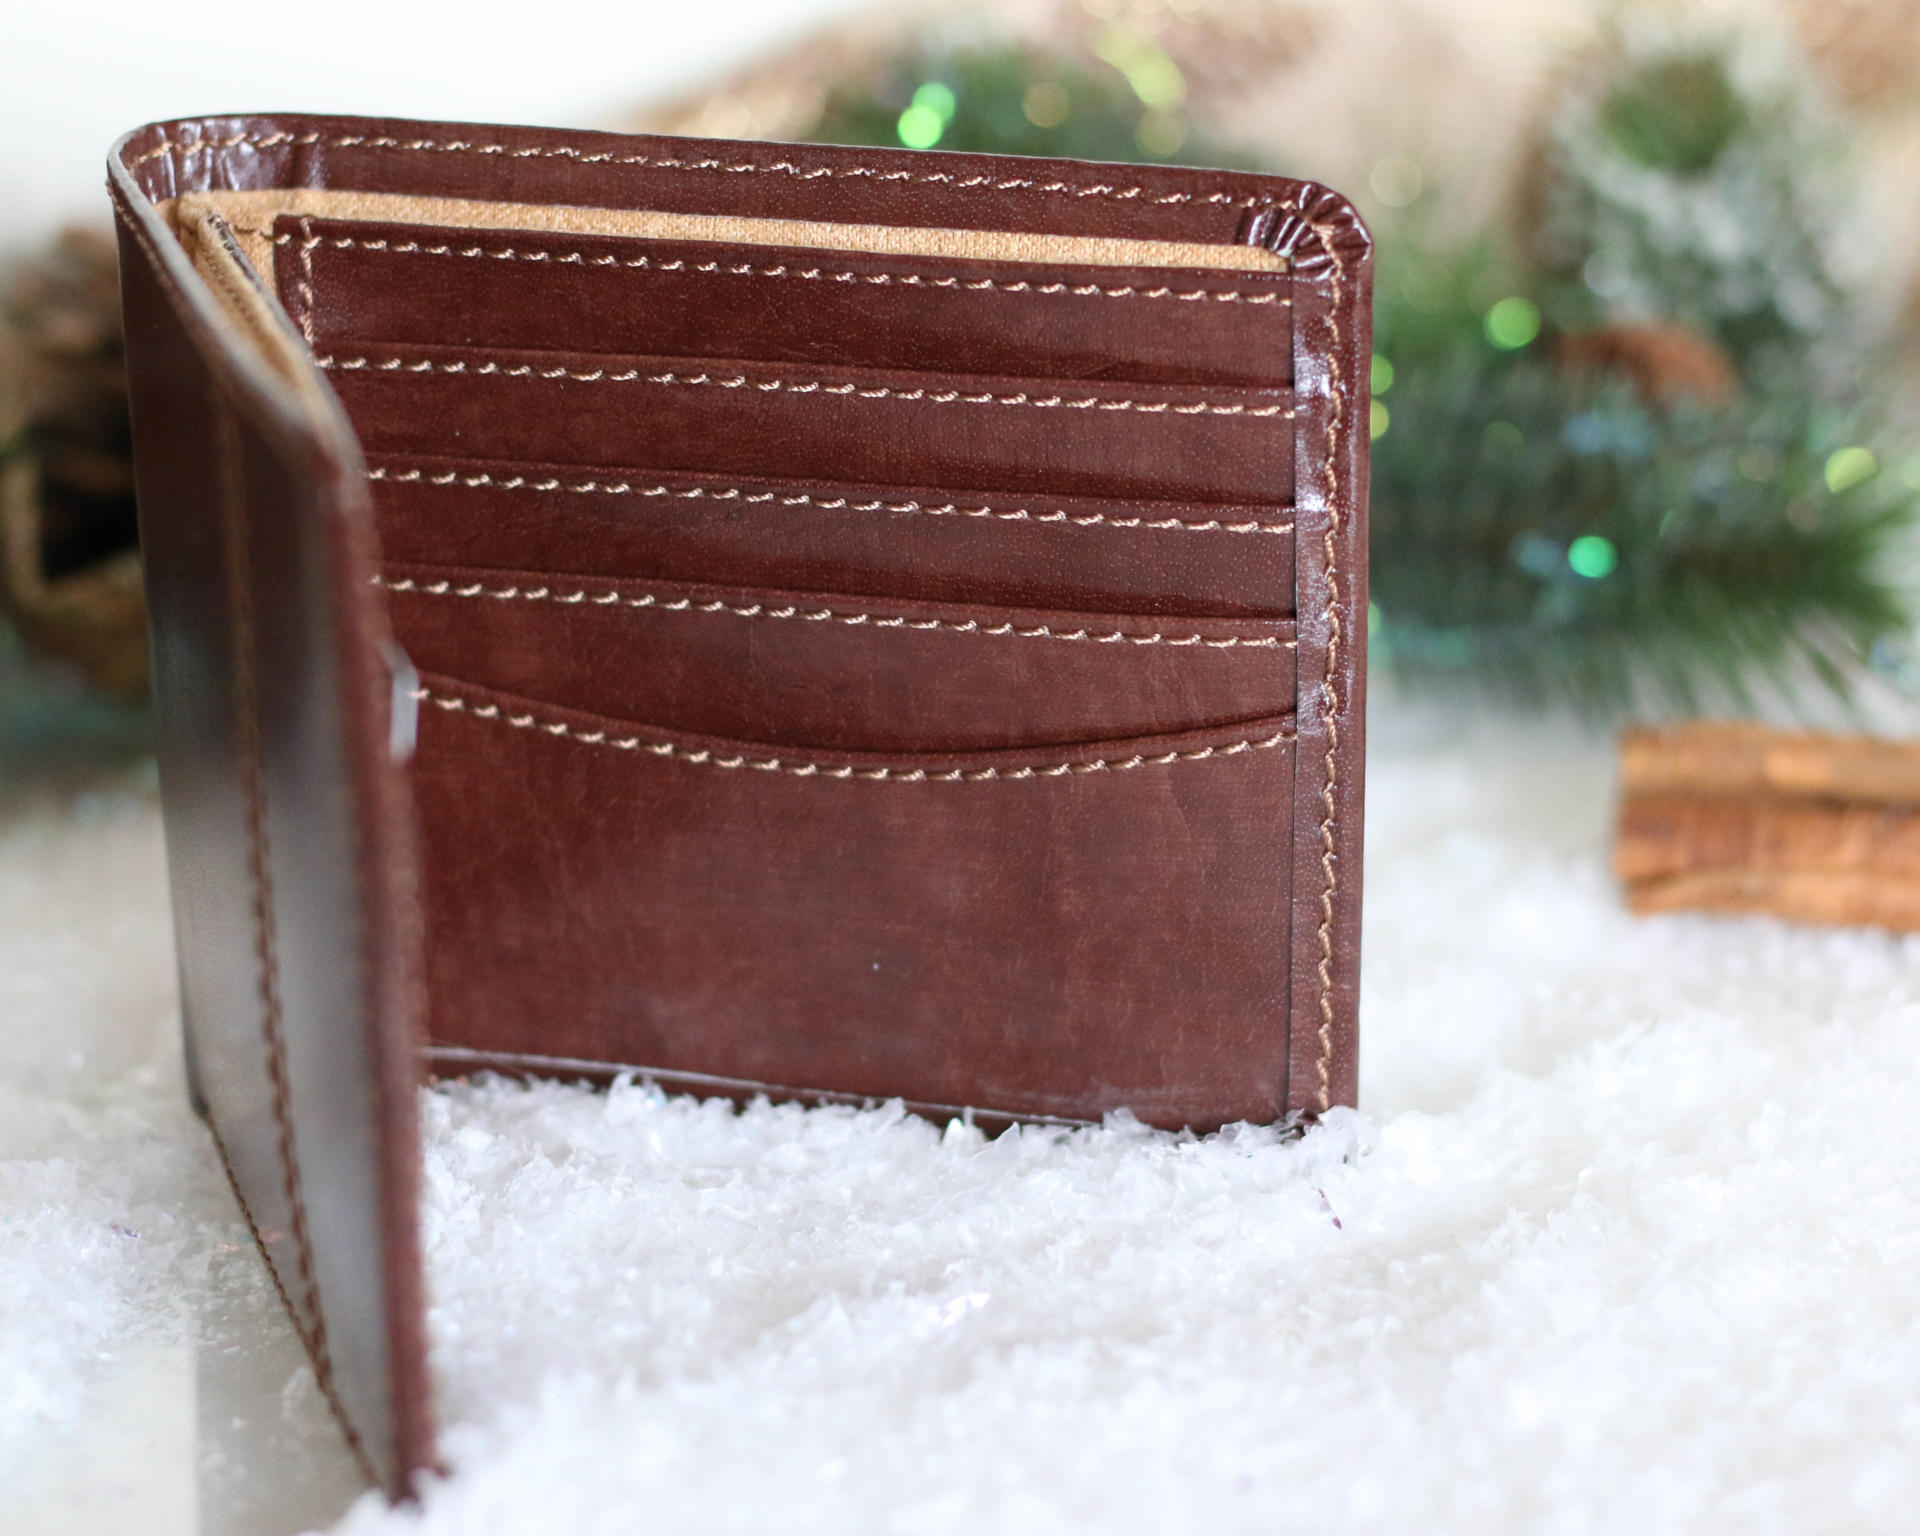 Dulwich Designs Heritage Wallet